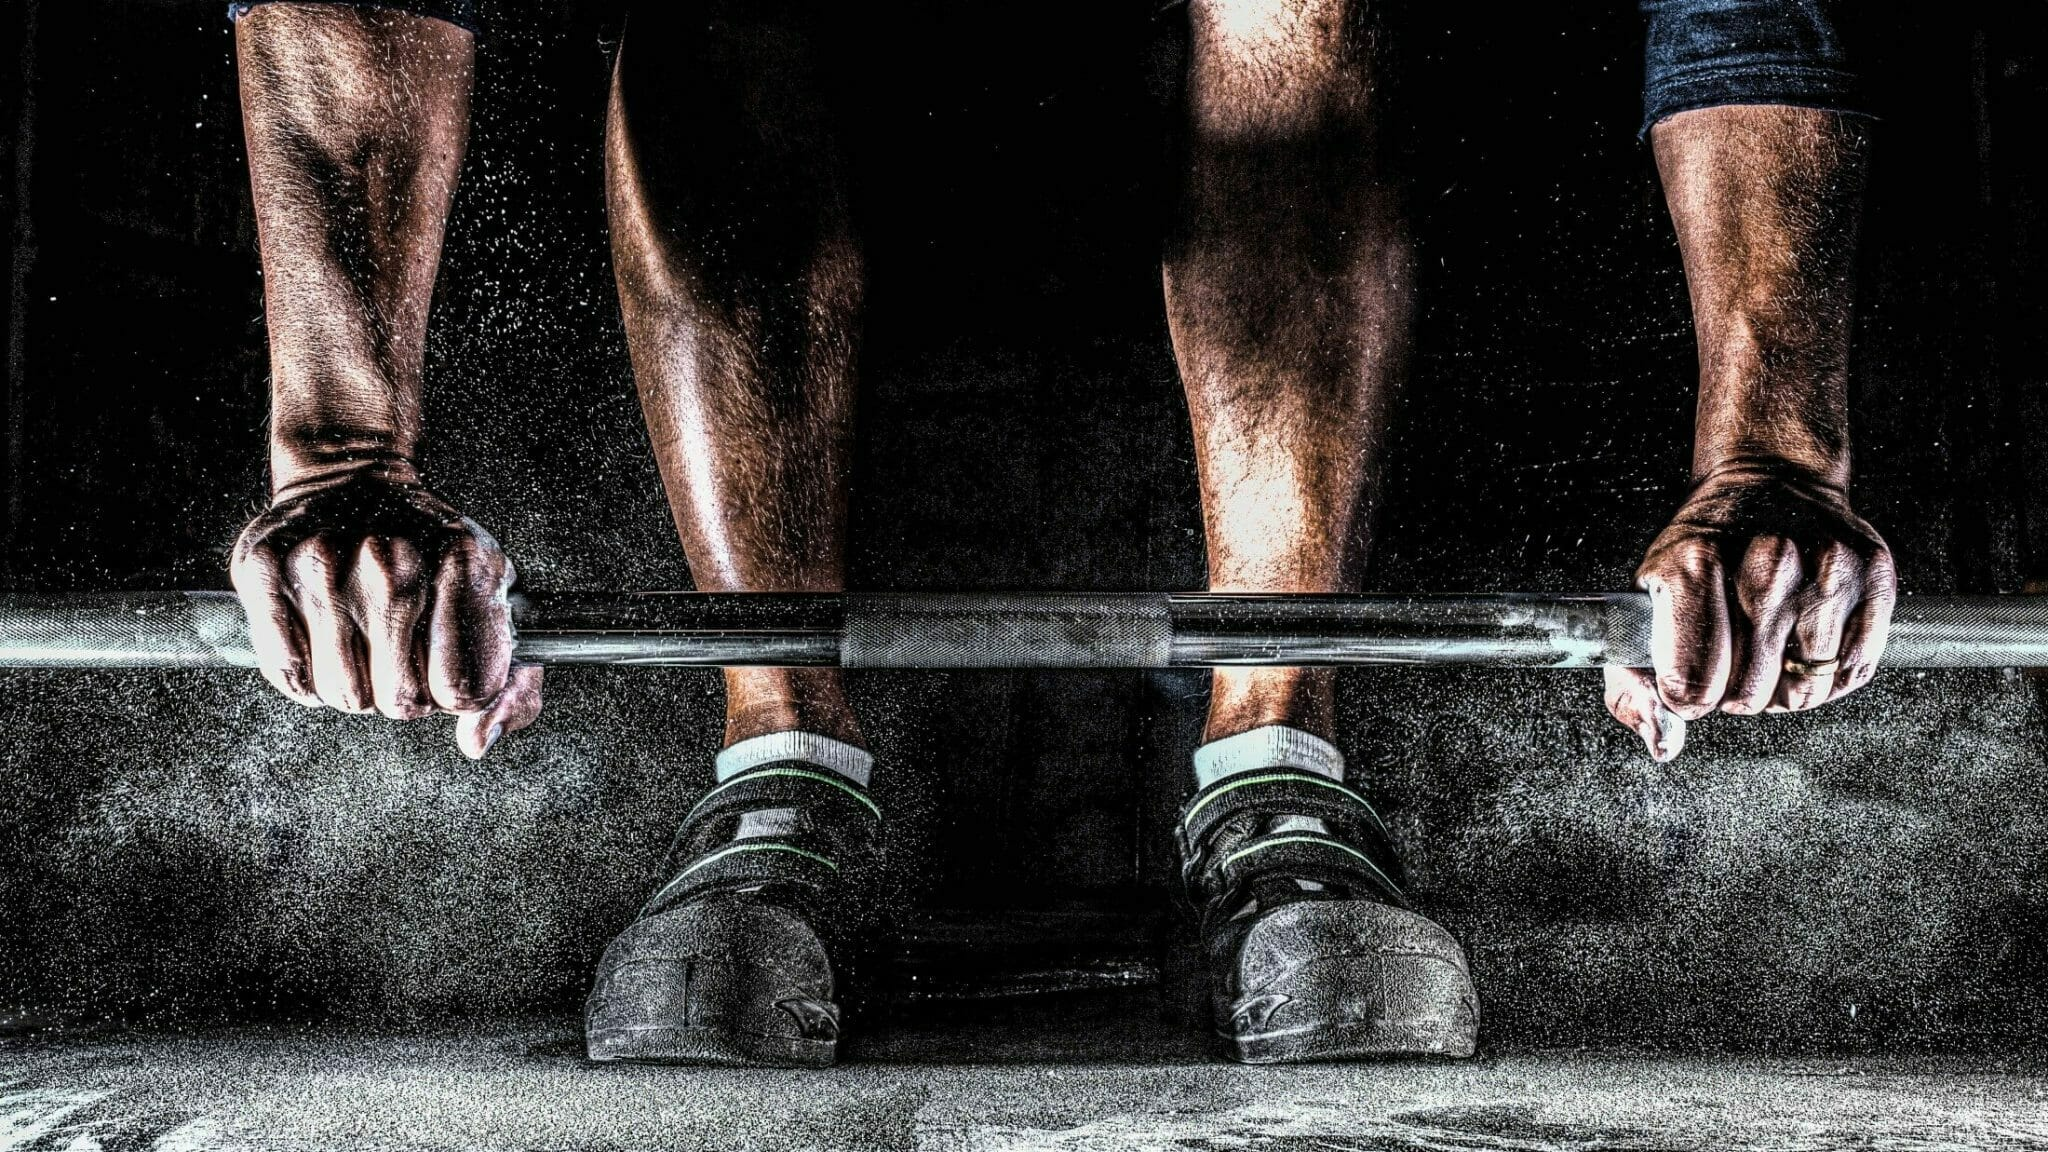 Heavy chalk in the air as man in high heel raise lifting shoes prepares for deadlift.